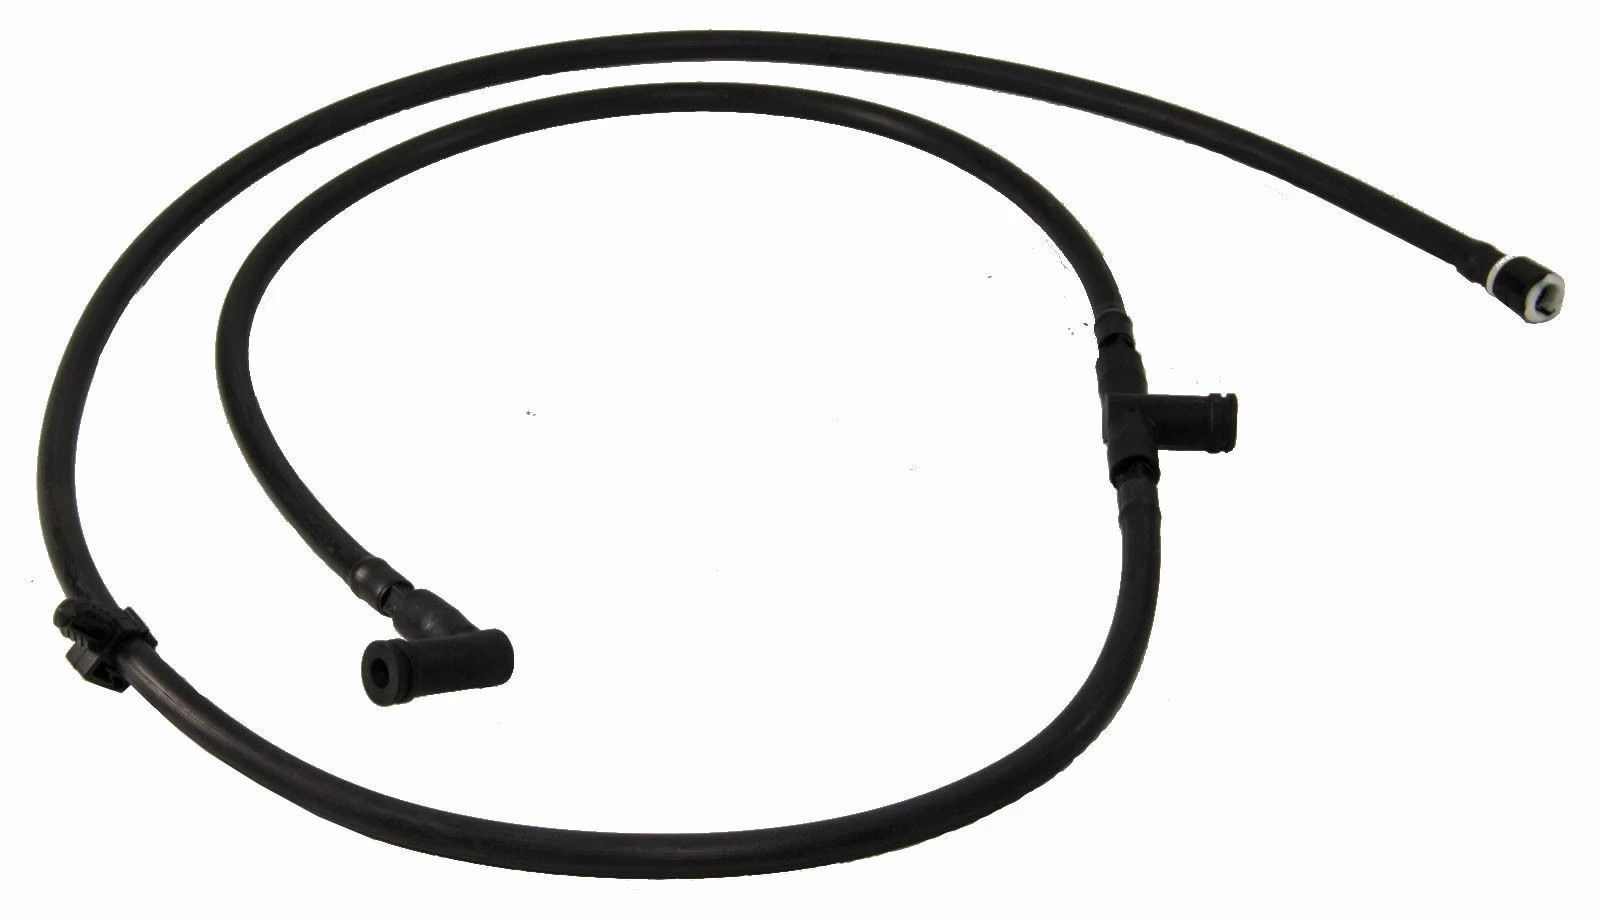 6 7l Windshield Washer Fluid Hose For 11 16 Ford